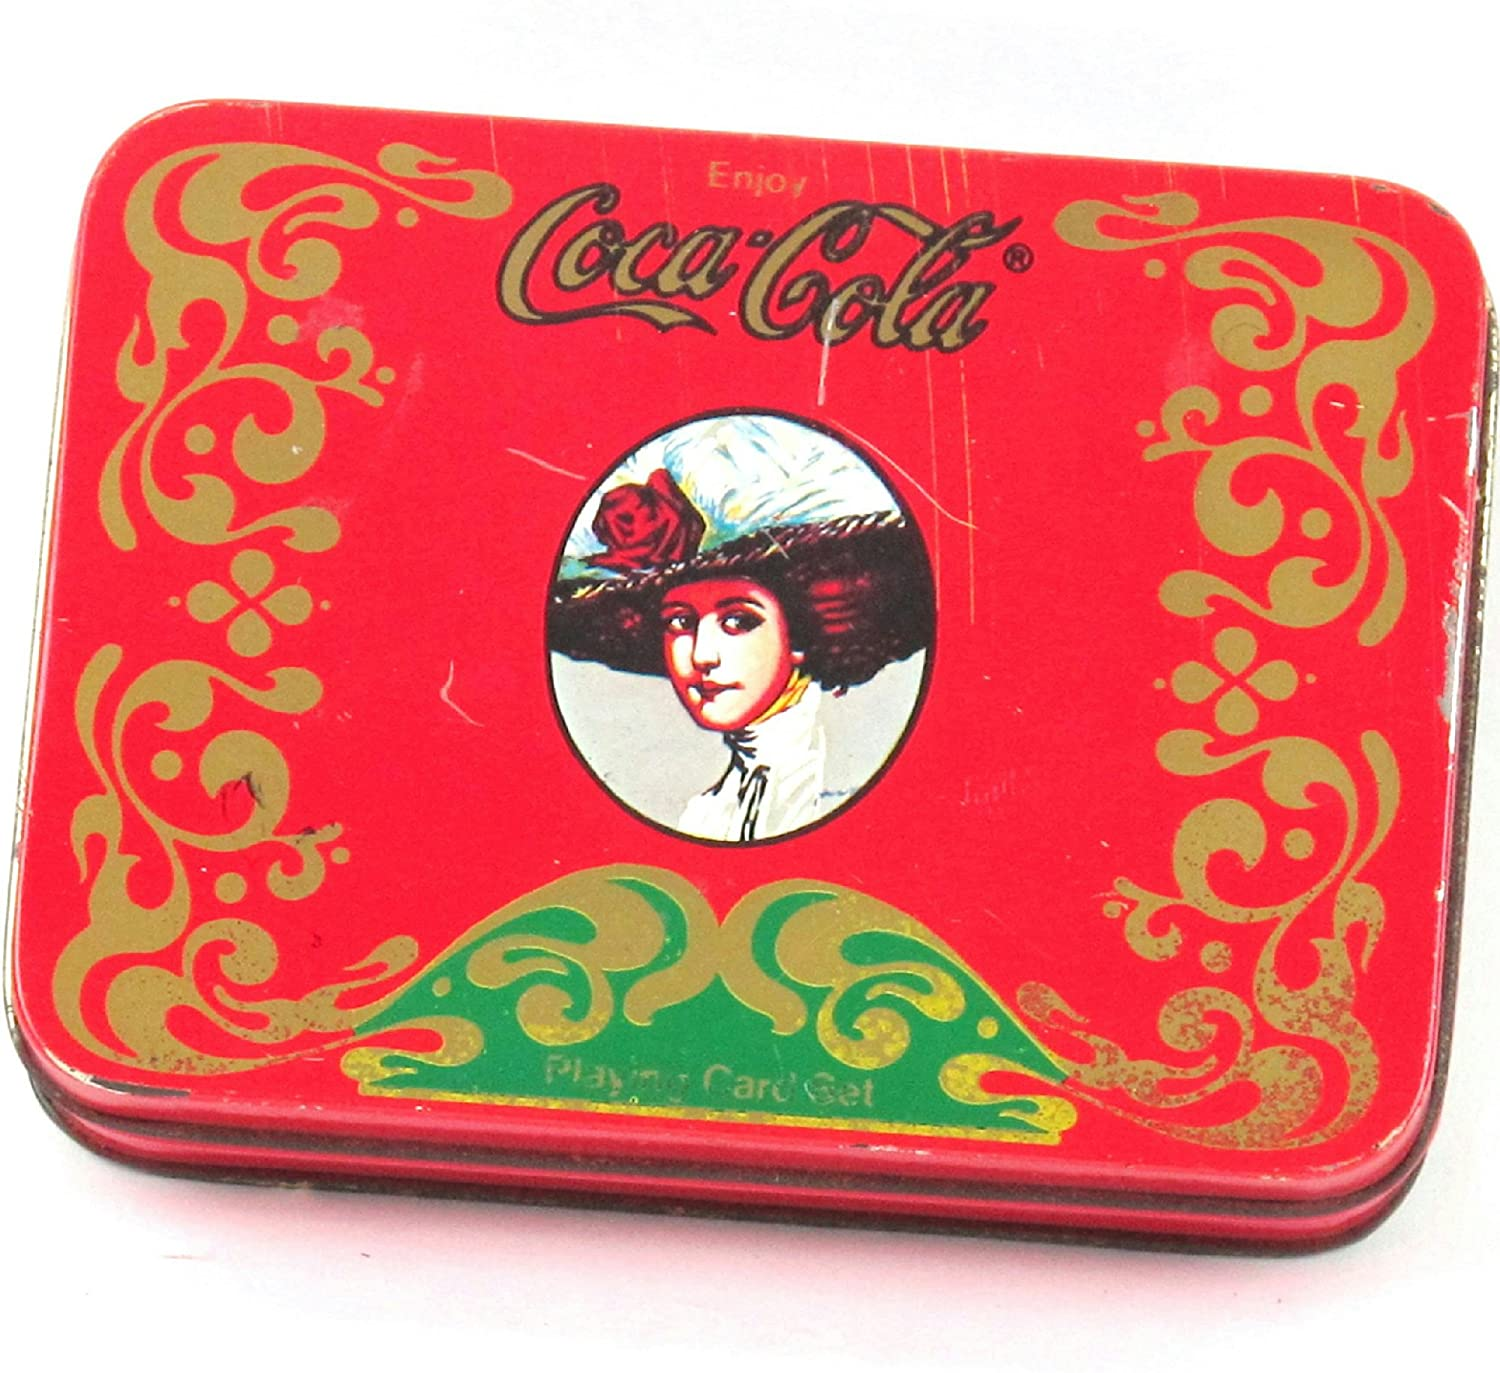 2 Sets Of Vintage Coca Cola Playing Cards In Tin Container - 41746